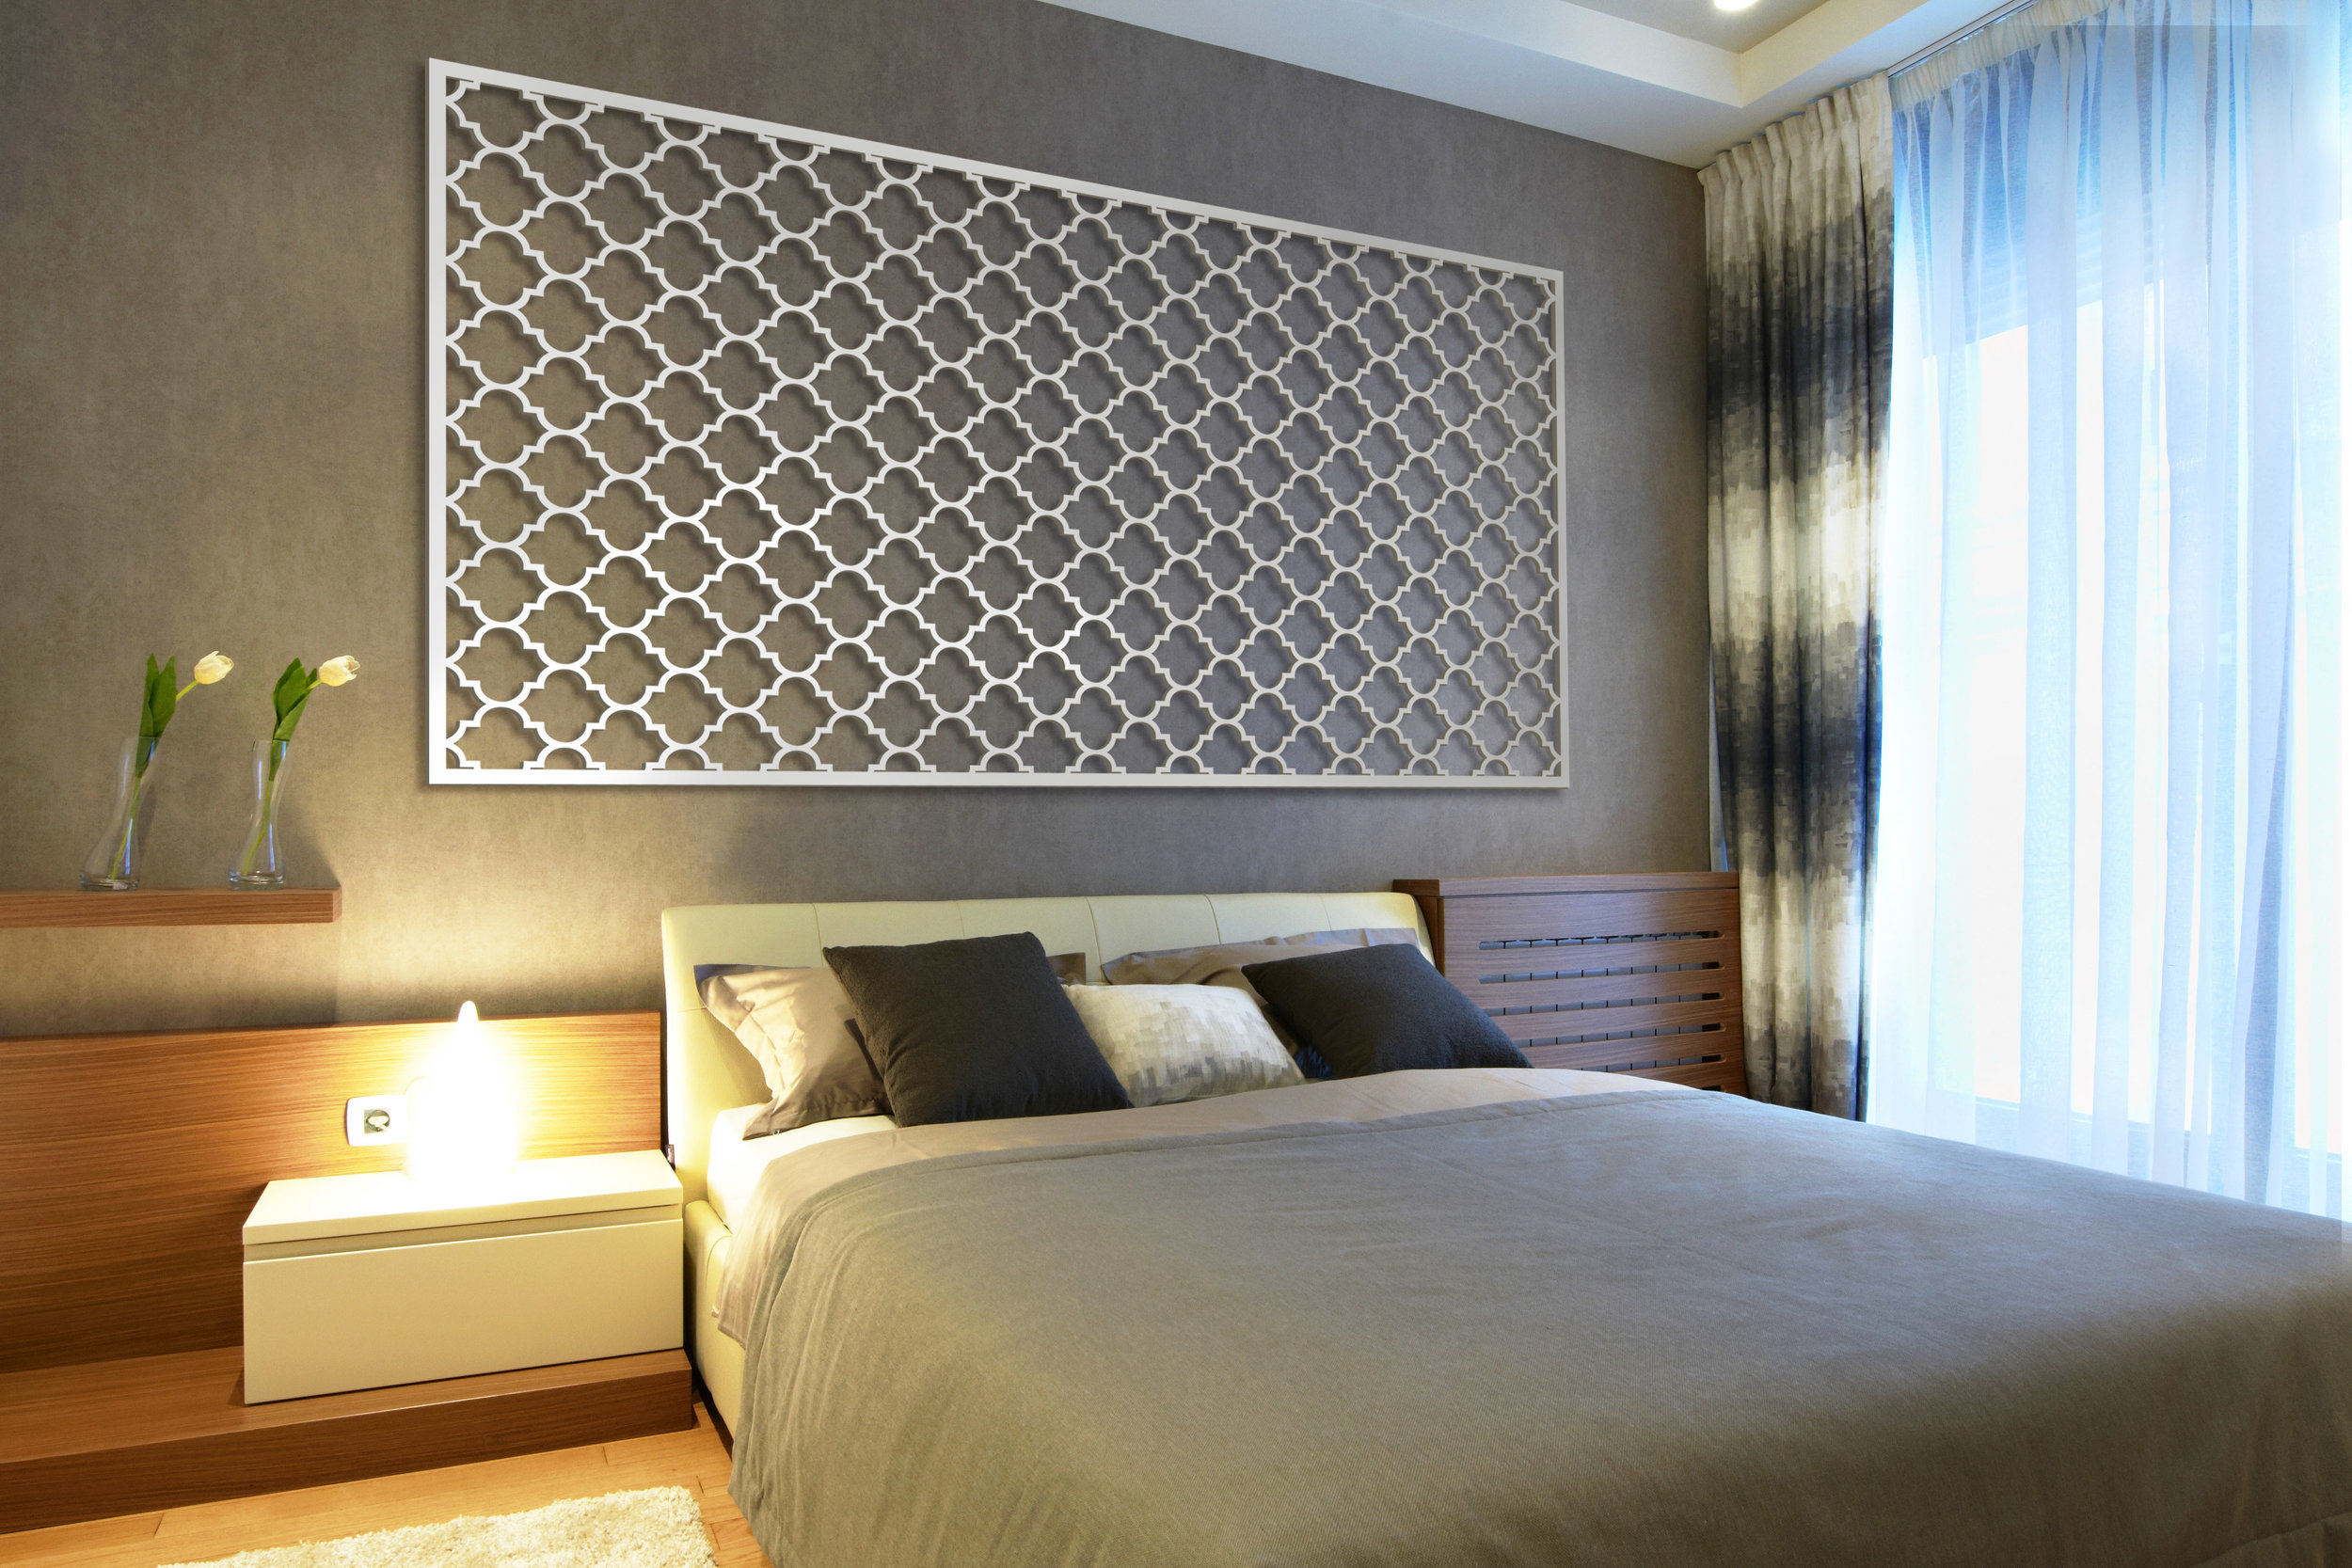 Installation Rendering C   Arabesque 2 decorative office wall panel - painted